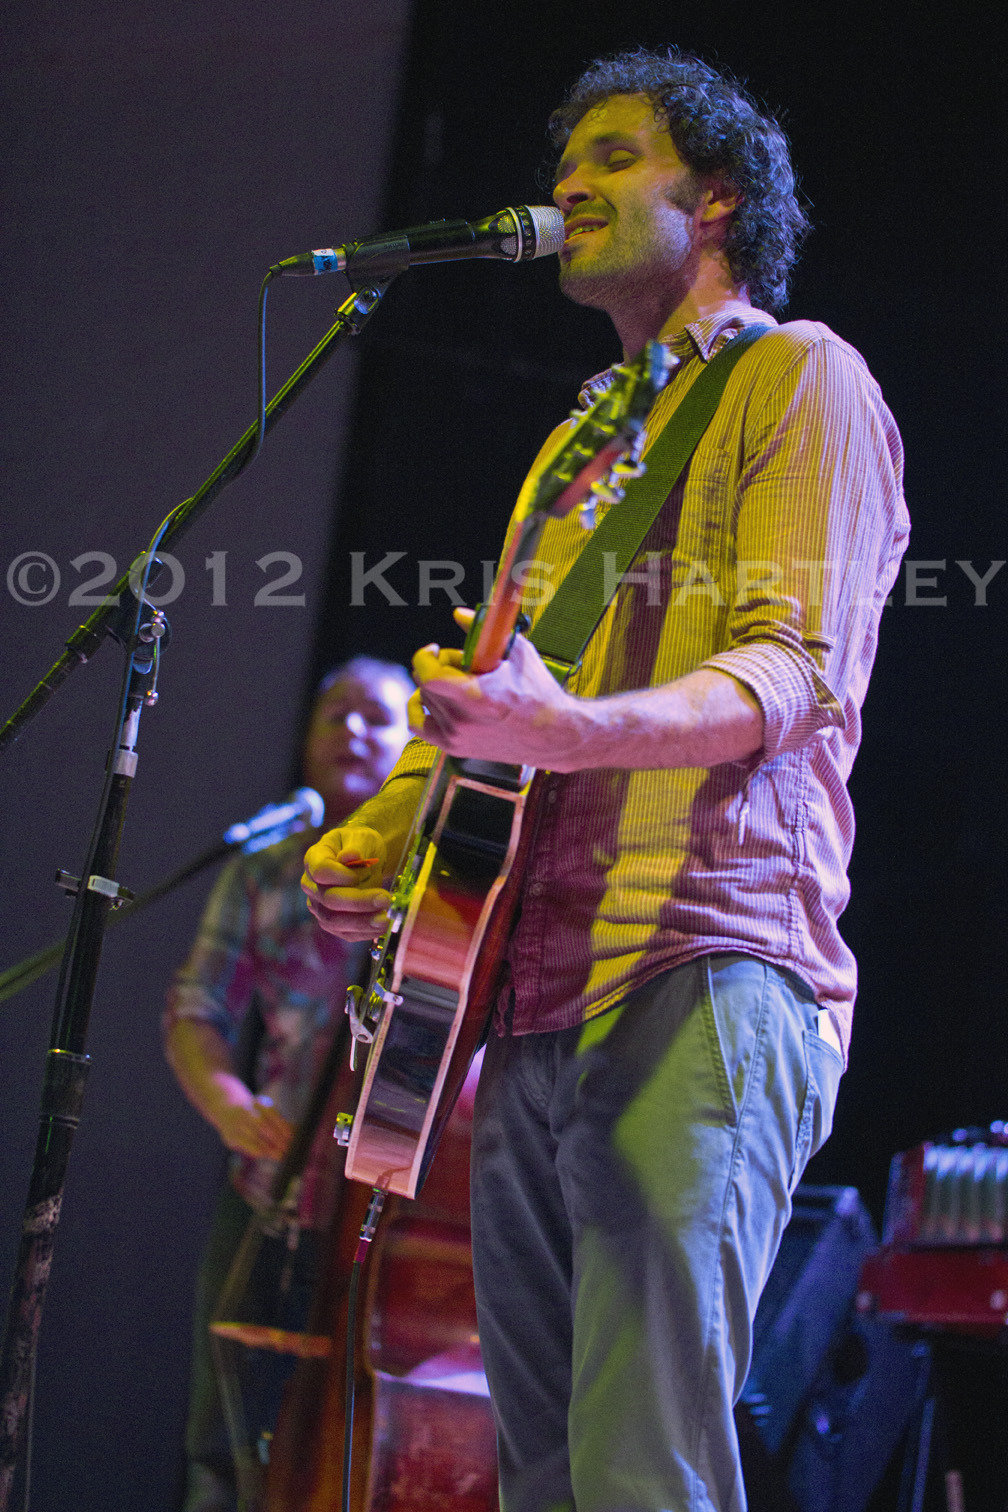 Blind Pilot at The Granada in Lawrence, Kansas last night.